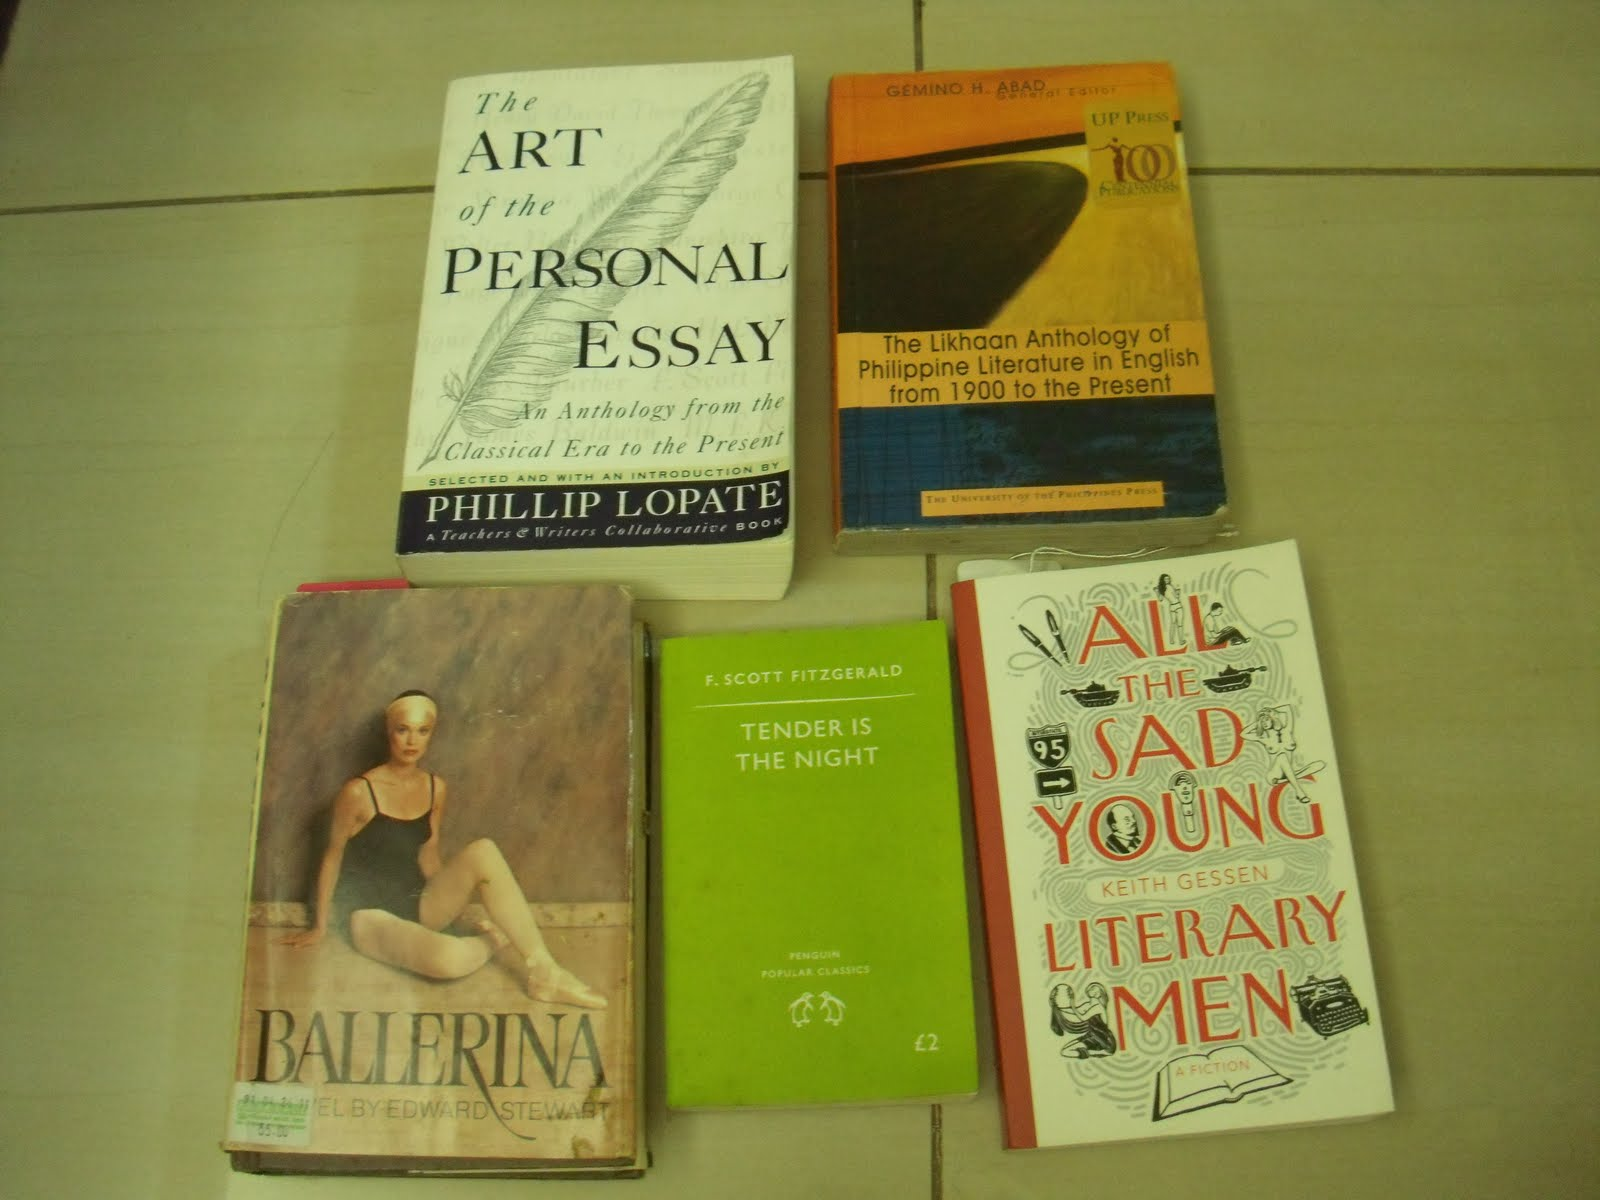 art of the personal essay amazon